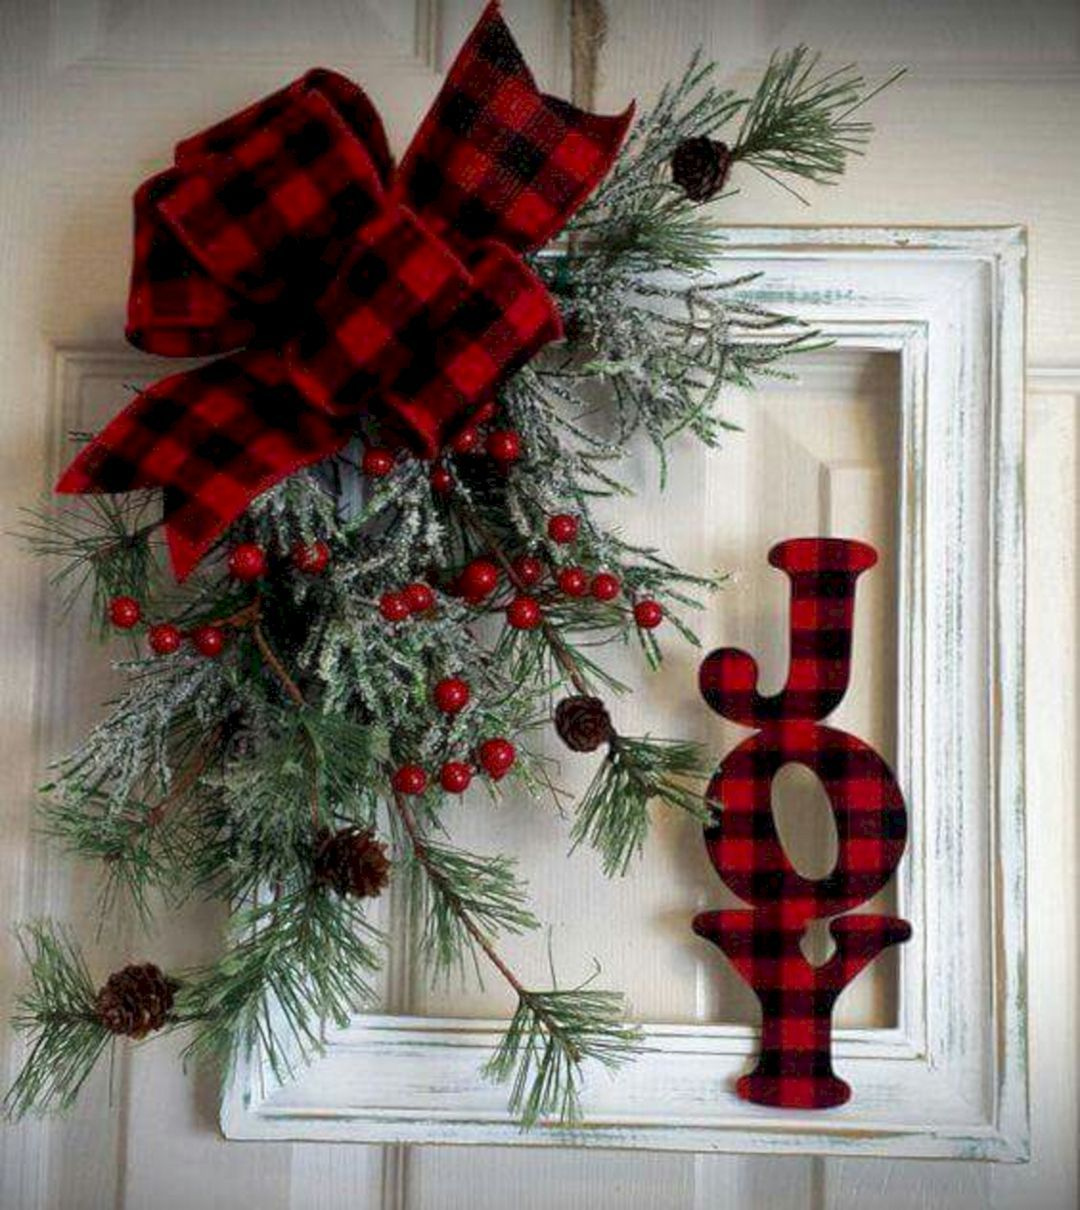 Simple Christmas Decoration Ideas 18 (Simple Christmas Decoration Ideas 18) design ideas and photos